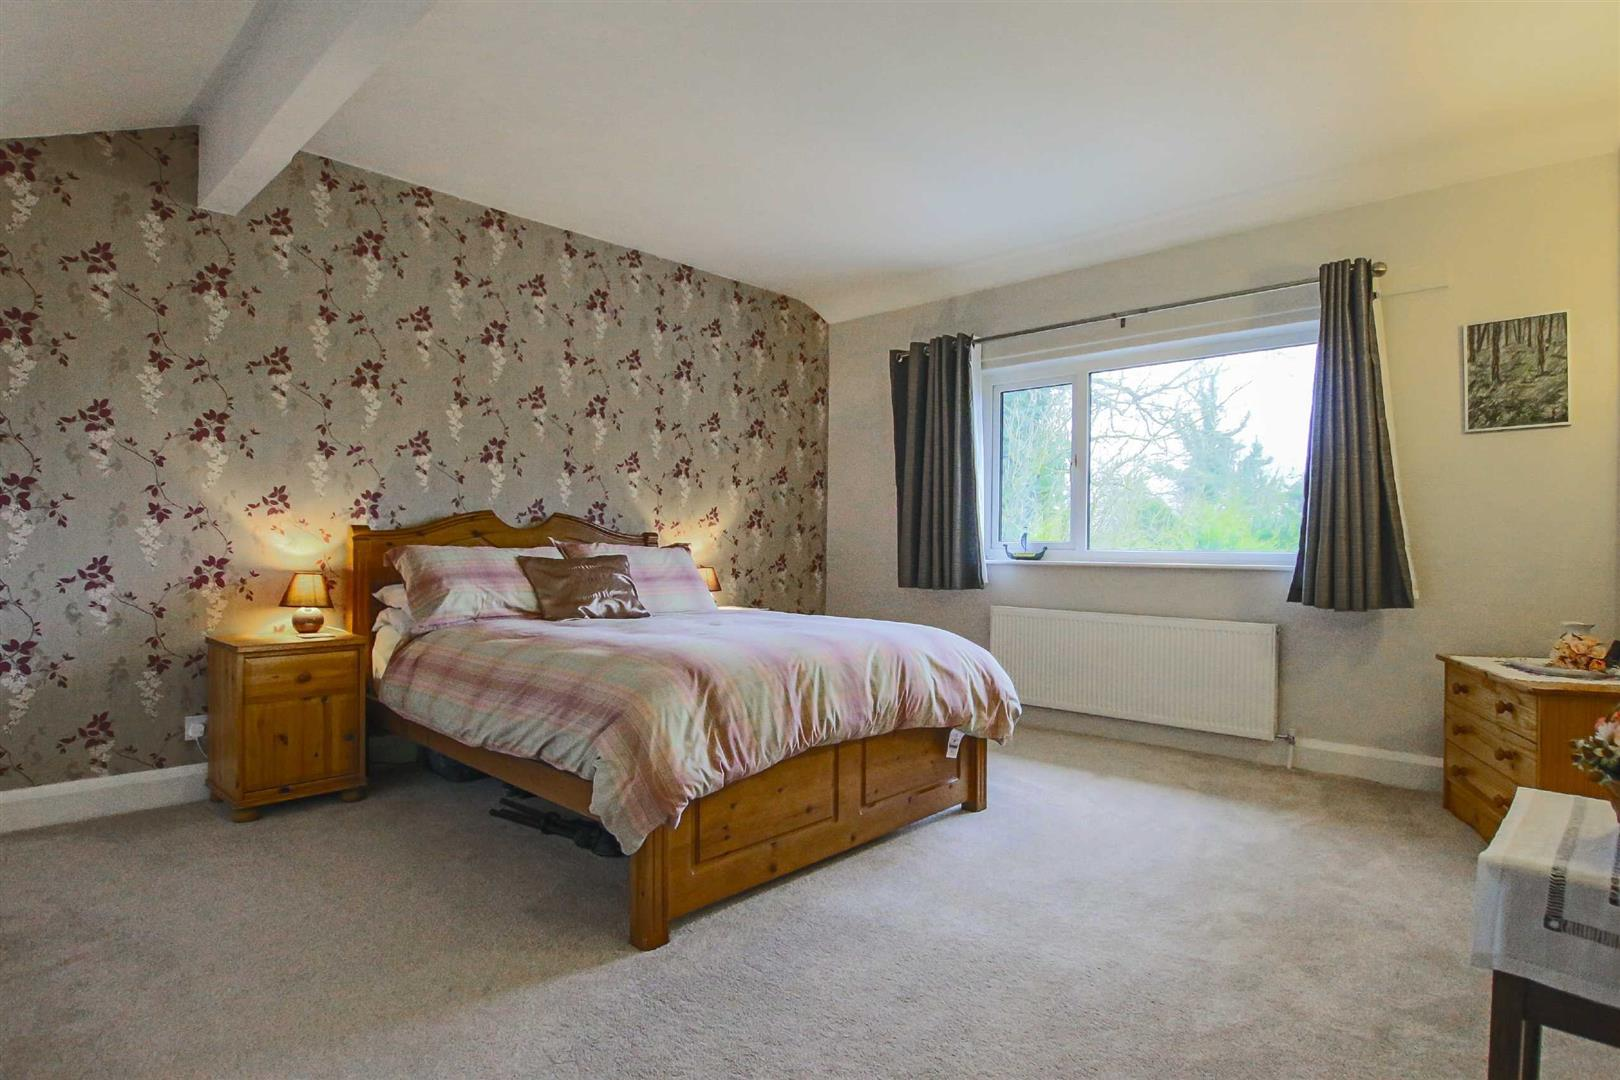 5 Bedroom Detached House For Sale - Image 7